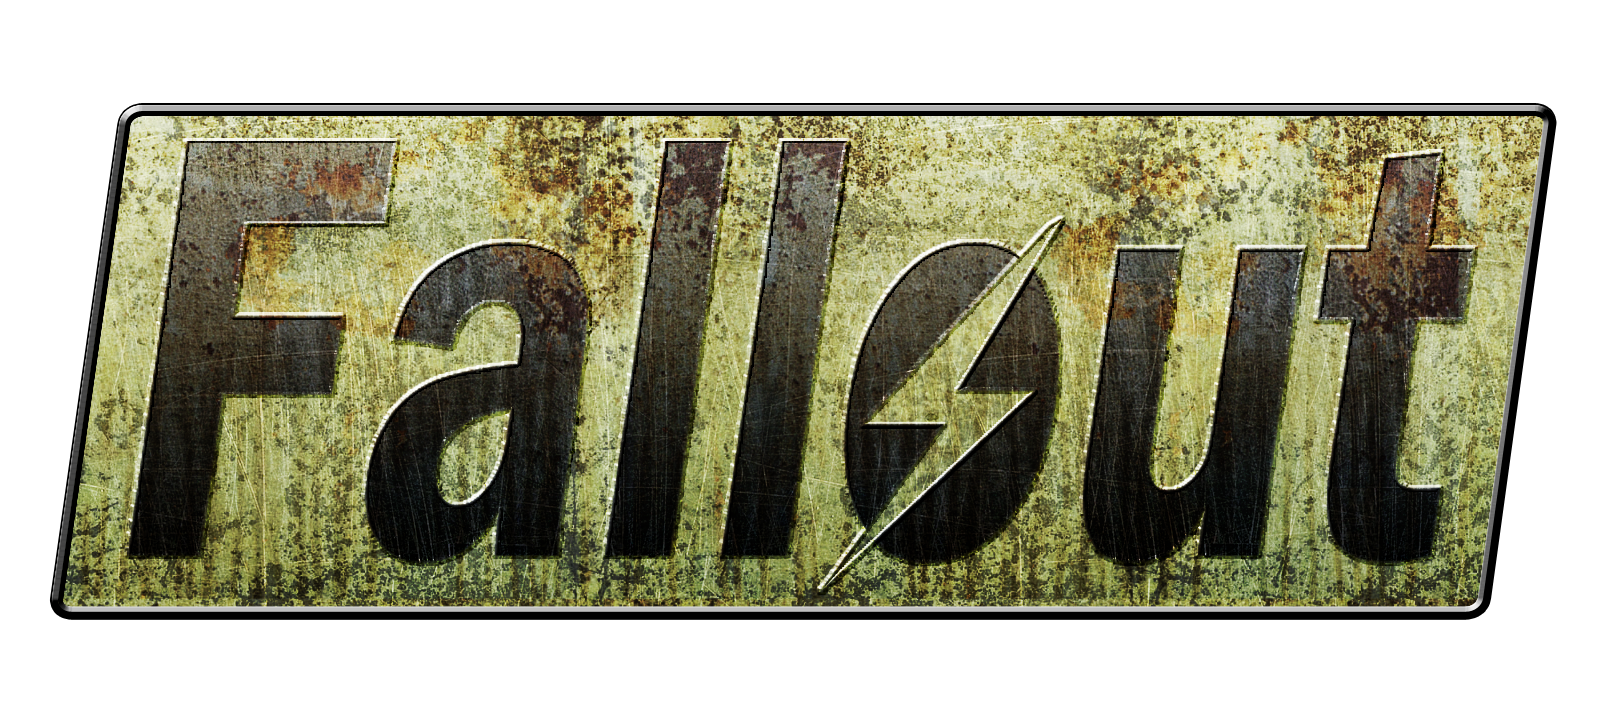 Fallout 3 logo png. Image crossover wiki fandom